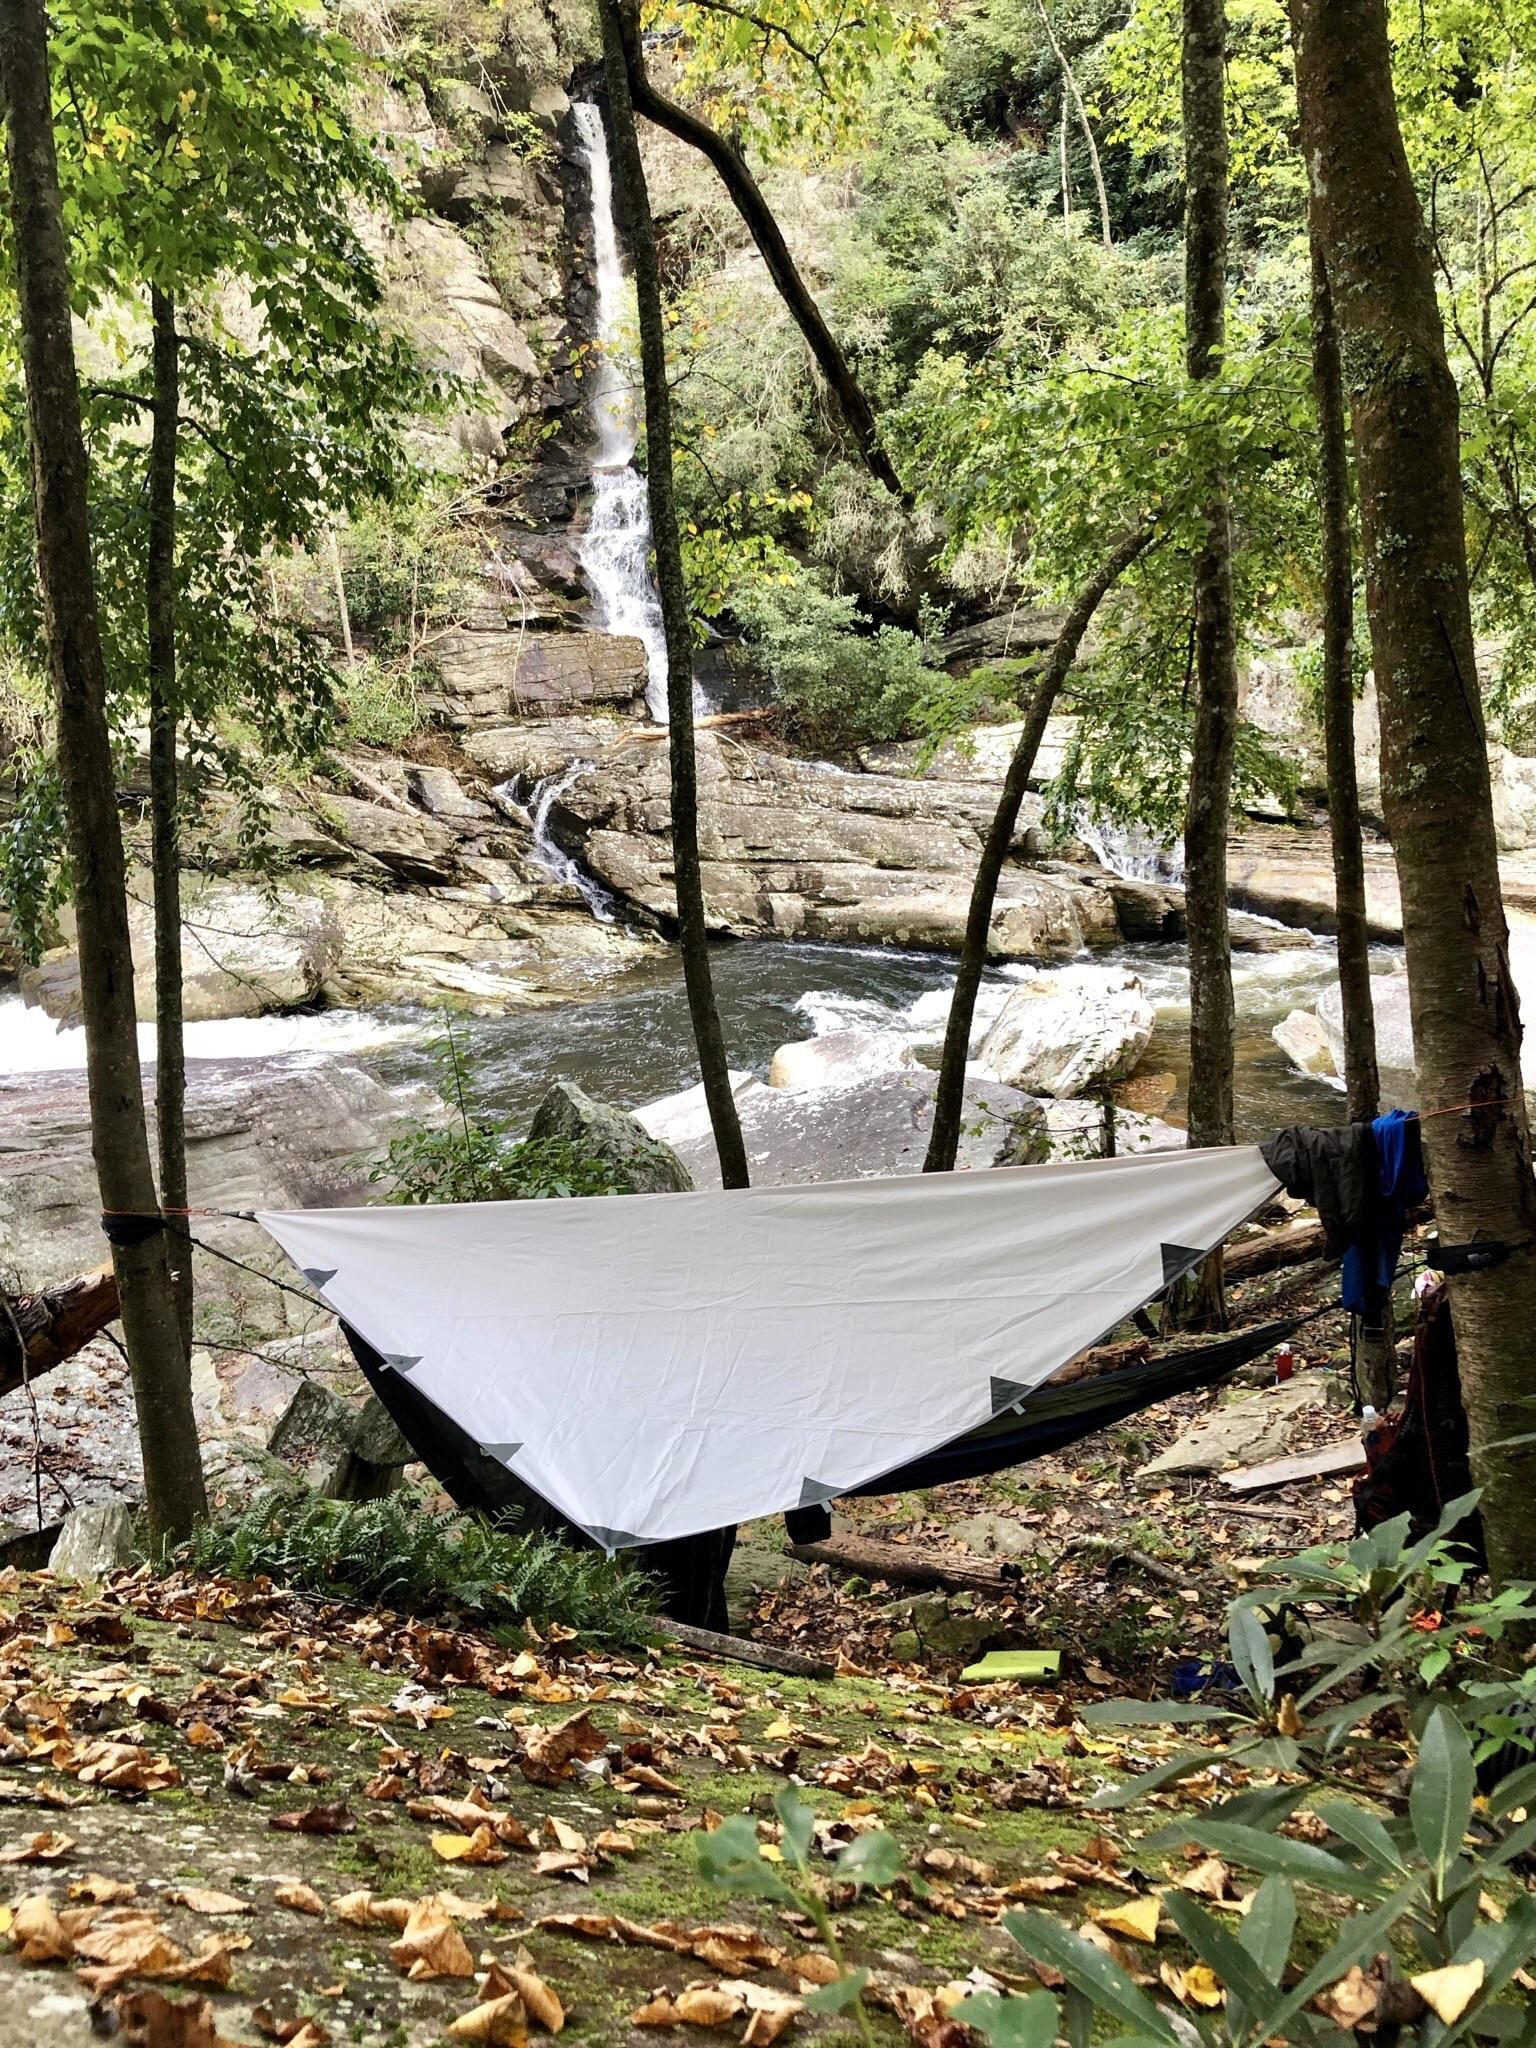 Pin by GetnHempd on Camping   Linville gorge, Campsite, Outdoor decor